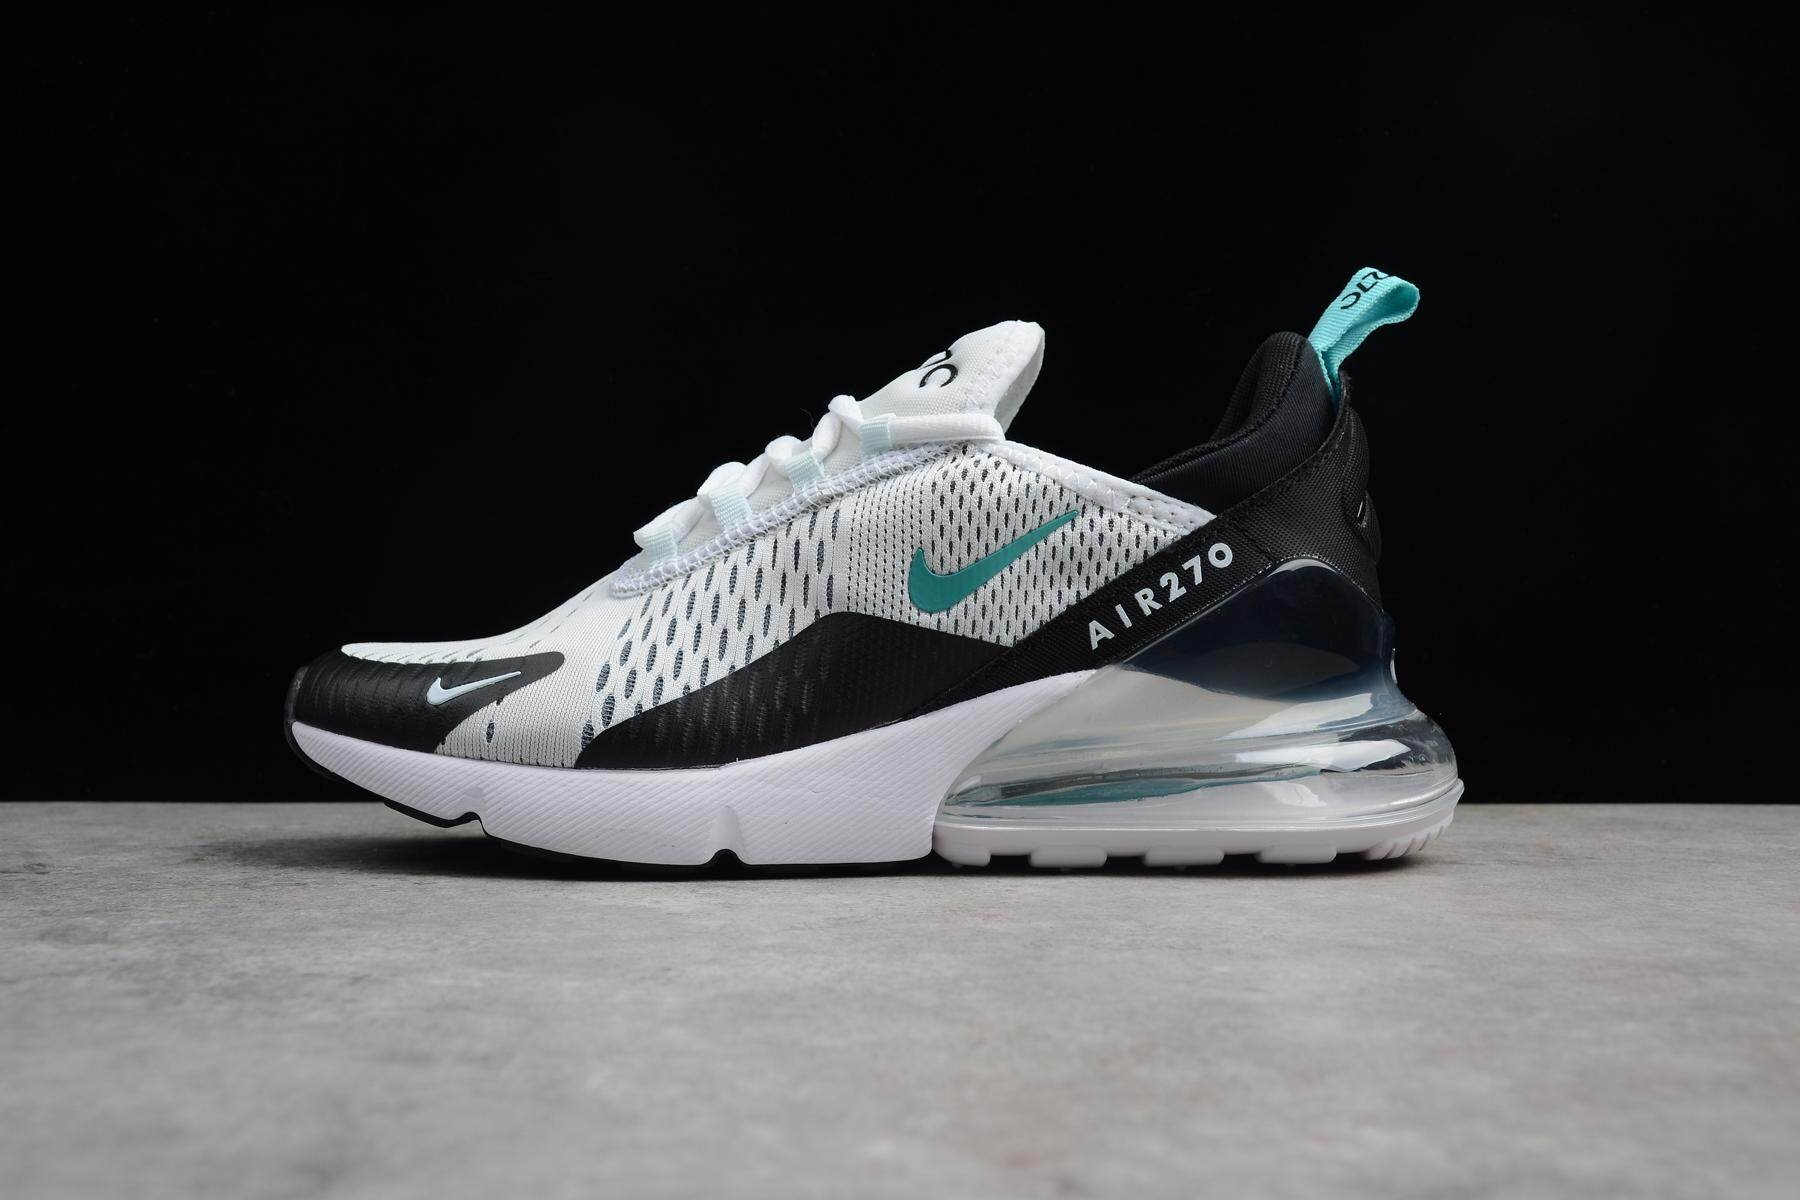 2018 NIKE AIR MAX 270 Men'sWomen's Sport Fashion Running Shoes Sneakers (HIGHT QUALITY) ETA Delivery Need 7 14 days (Pre Order)